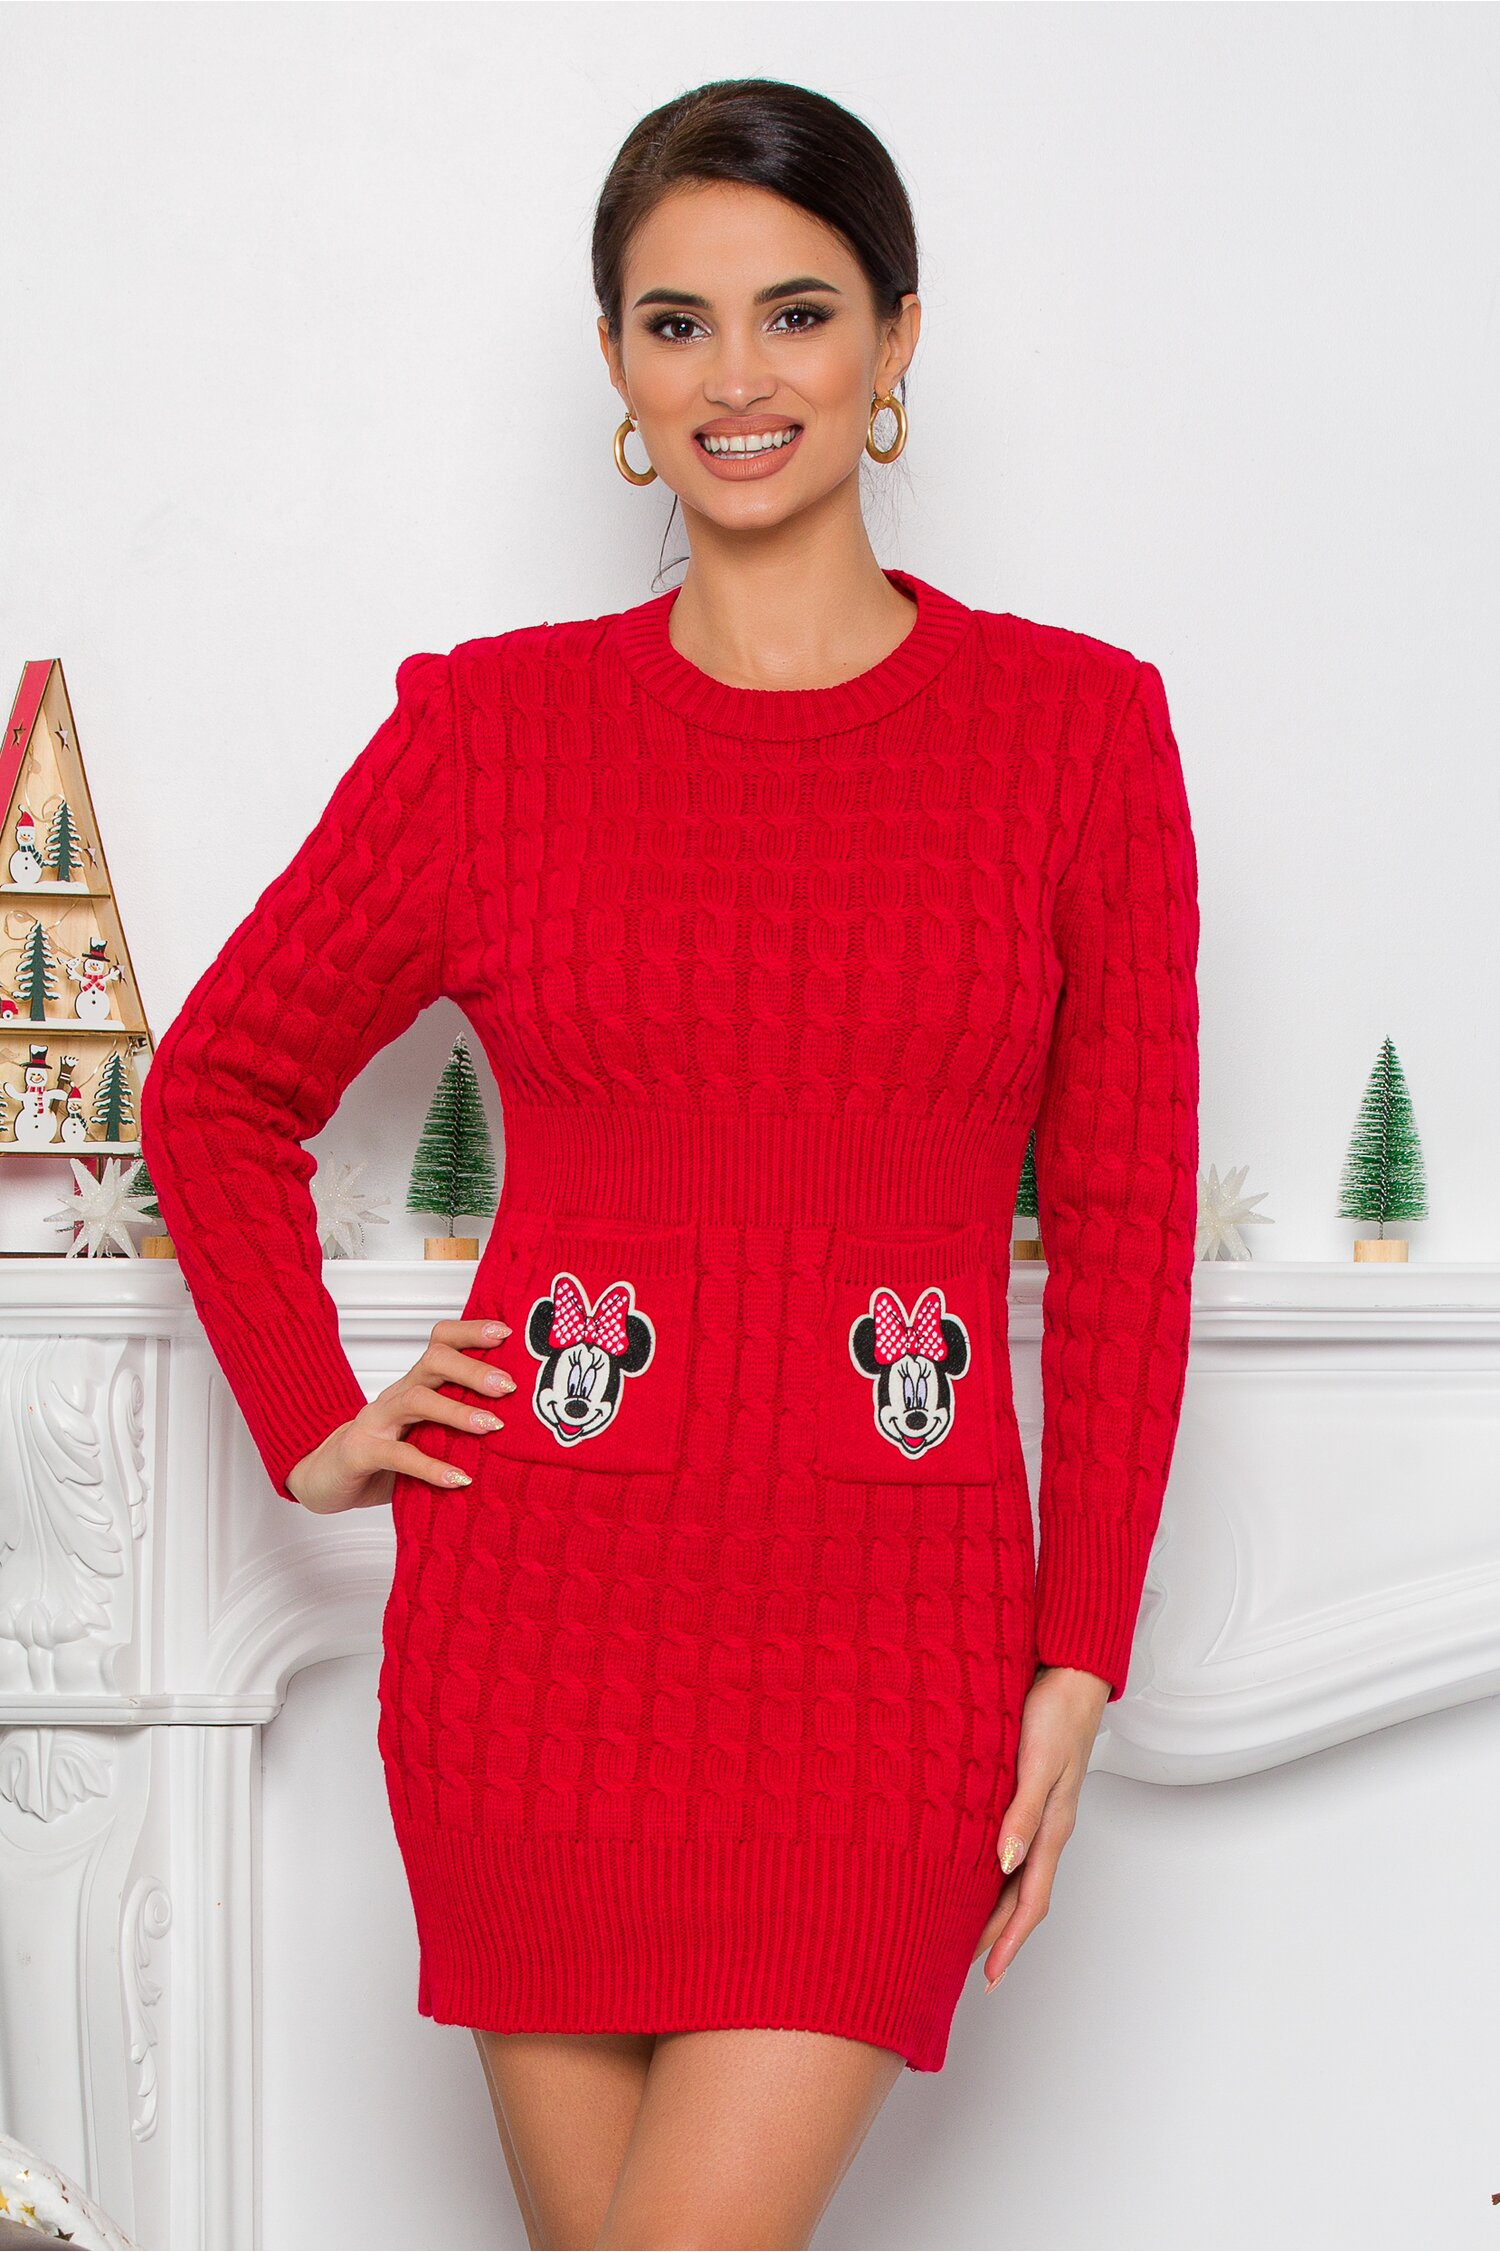 Rochie Minnie rosie din tricot cu design impletit imagine